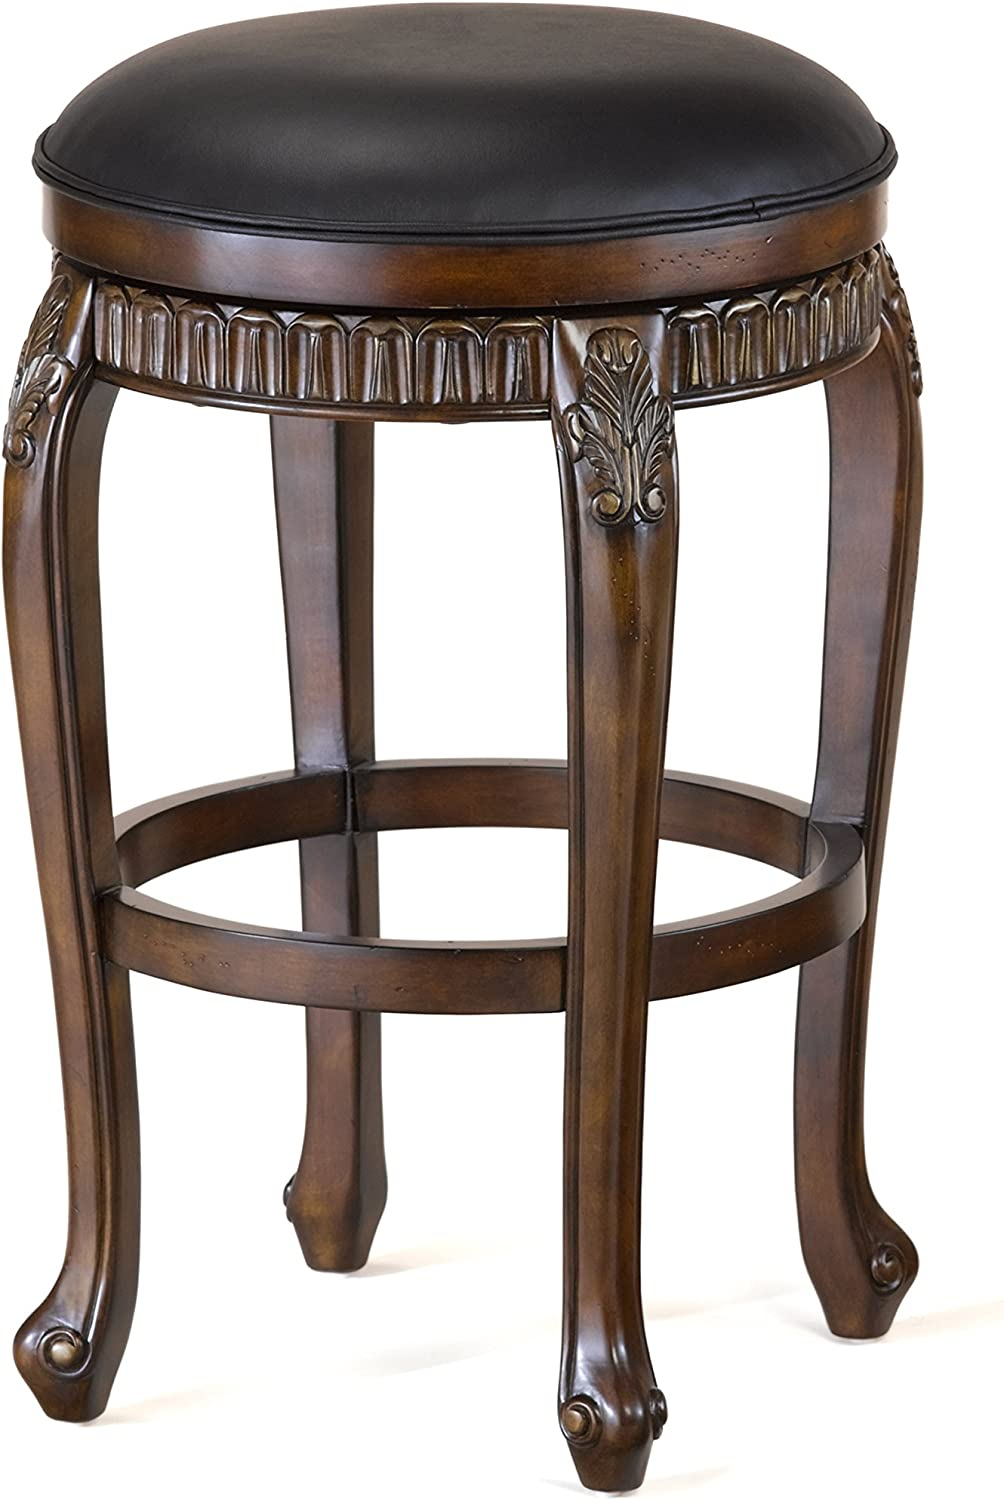 """Hillsdale Fleur de Lis Backless Swivel Counter Stool, 24"""", Distressed Cherry with Copper Highlights"""